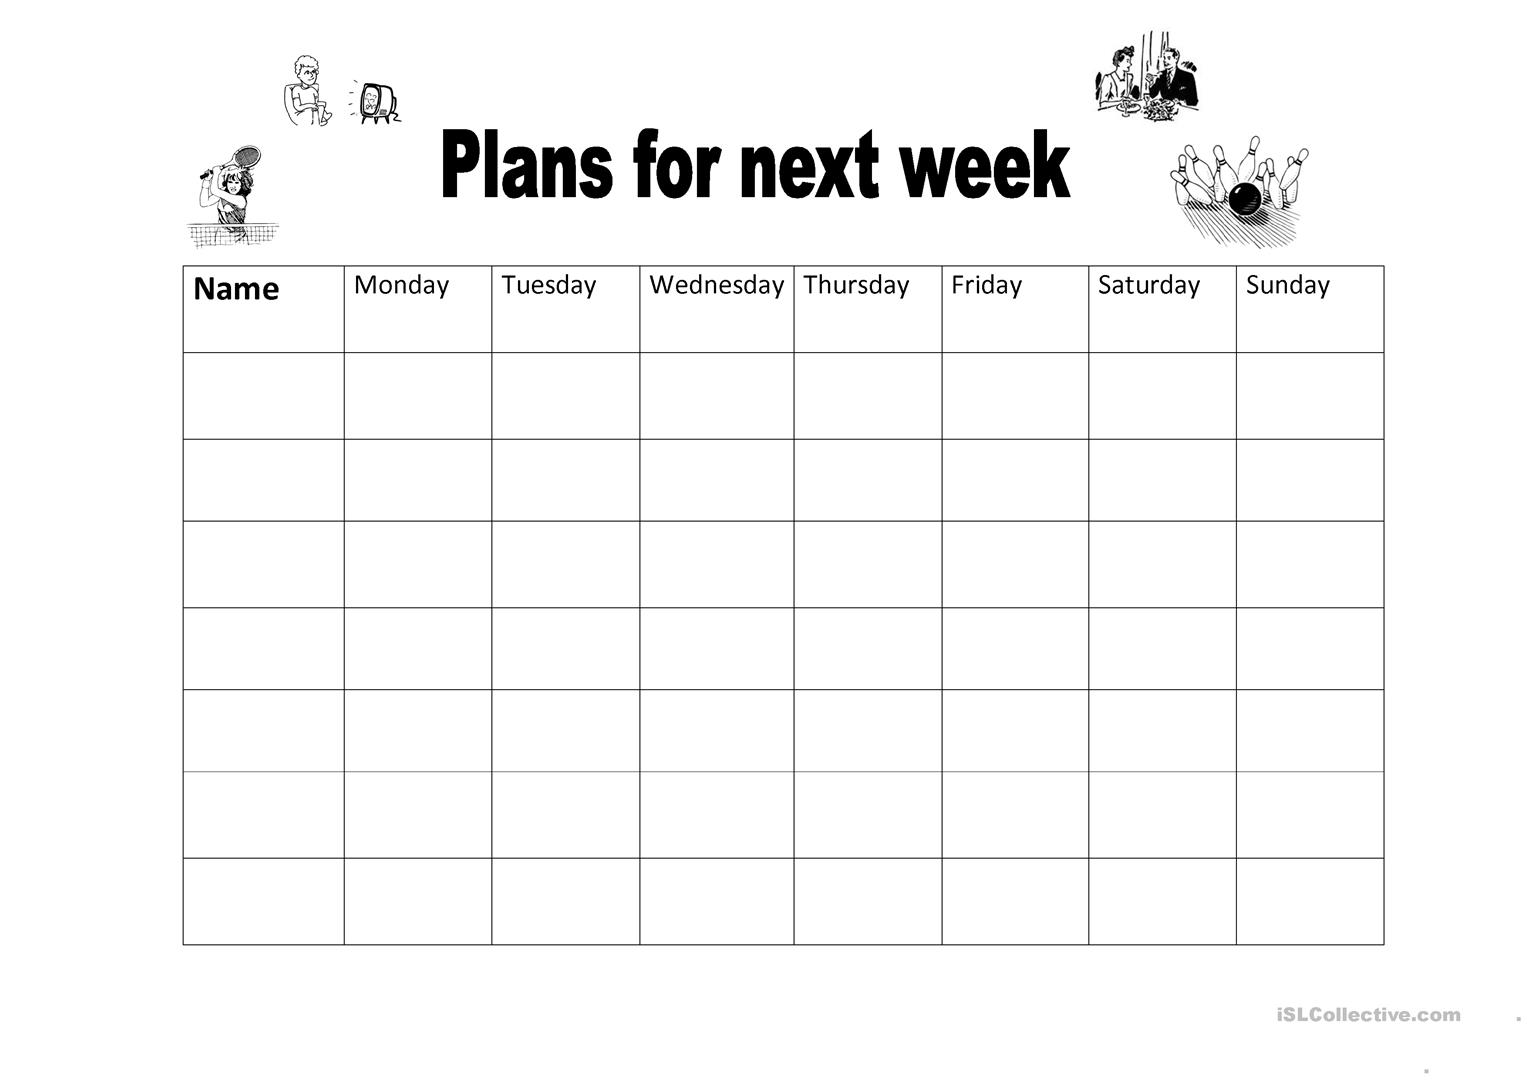 Plans For Next Week Worksheet